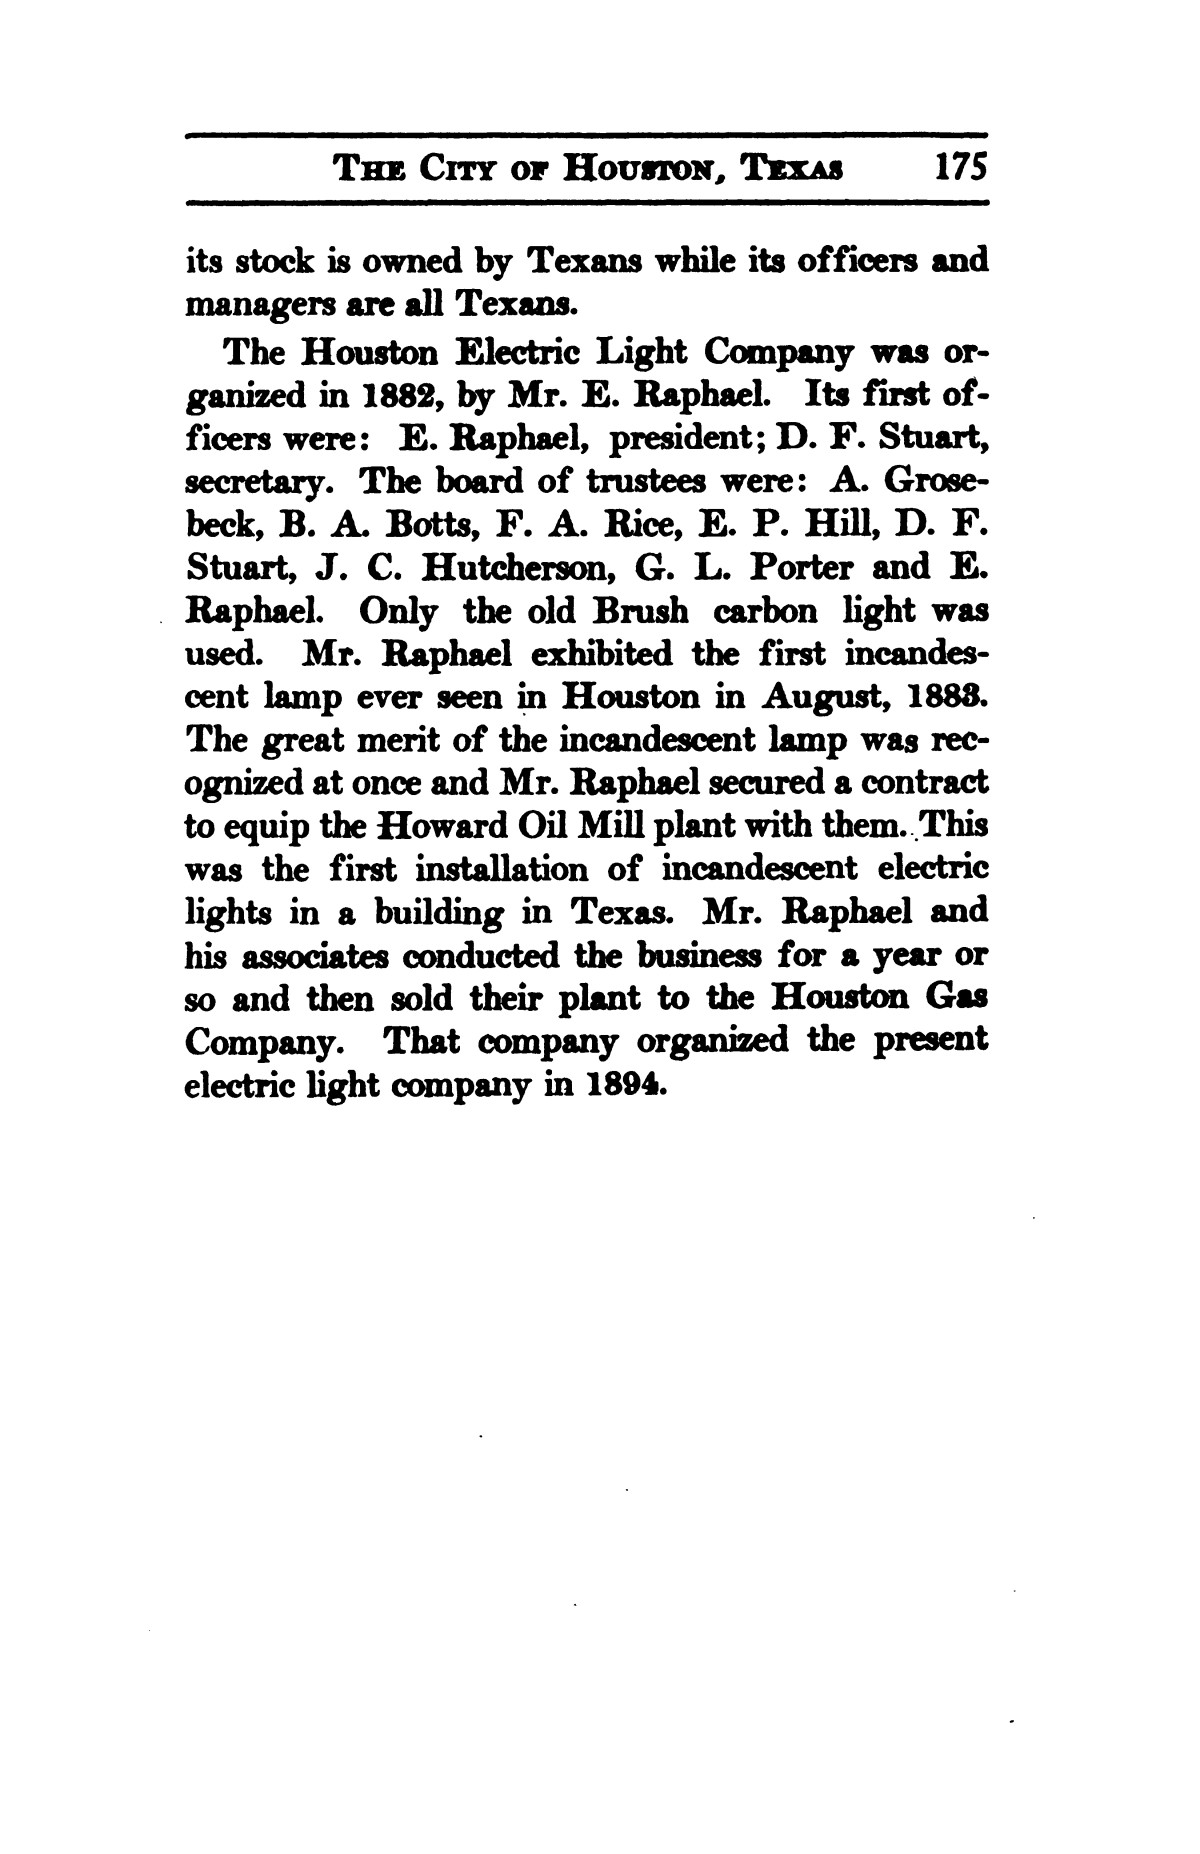 A thumb-nail history of the city of Houston, Texas, from its founding in 1836 to the year 1912                                                                                                      175